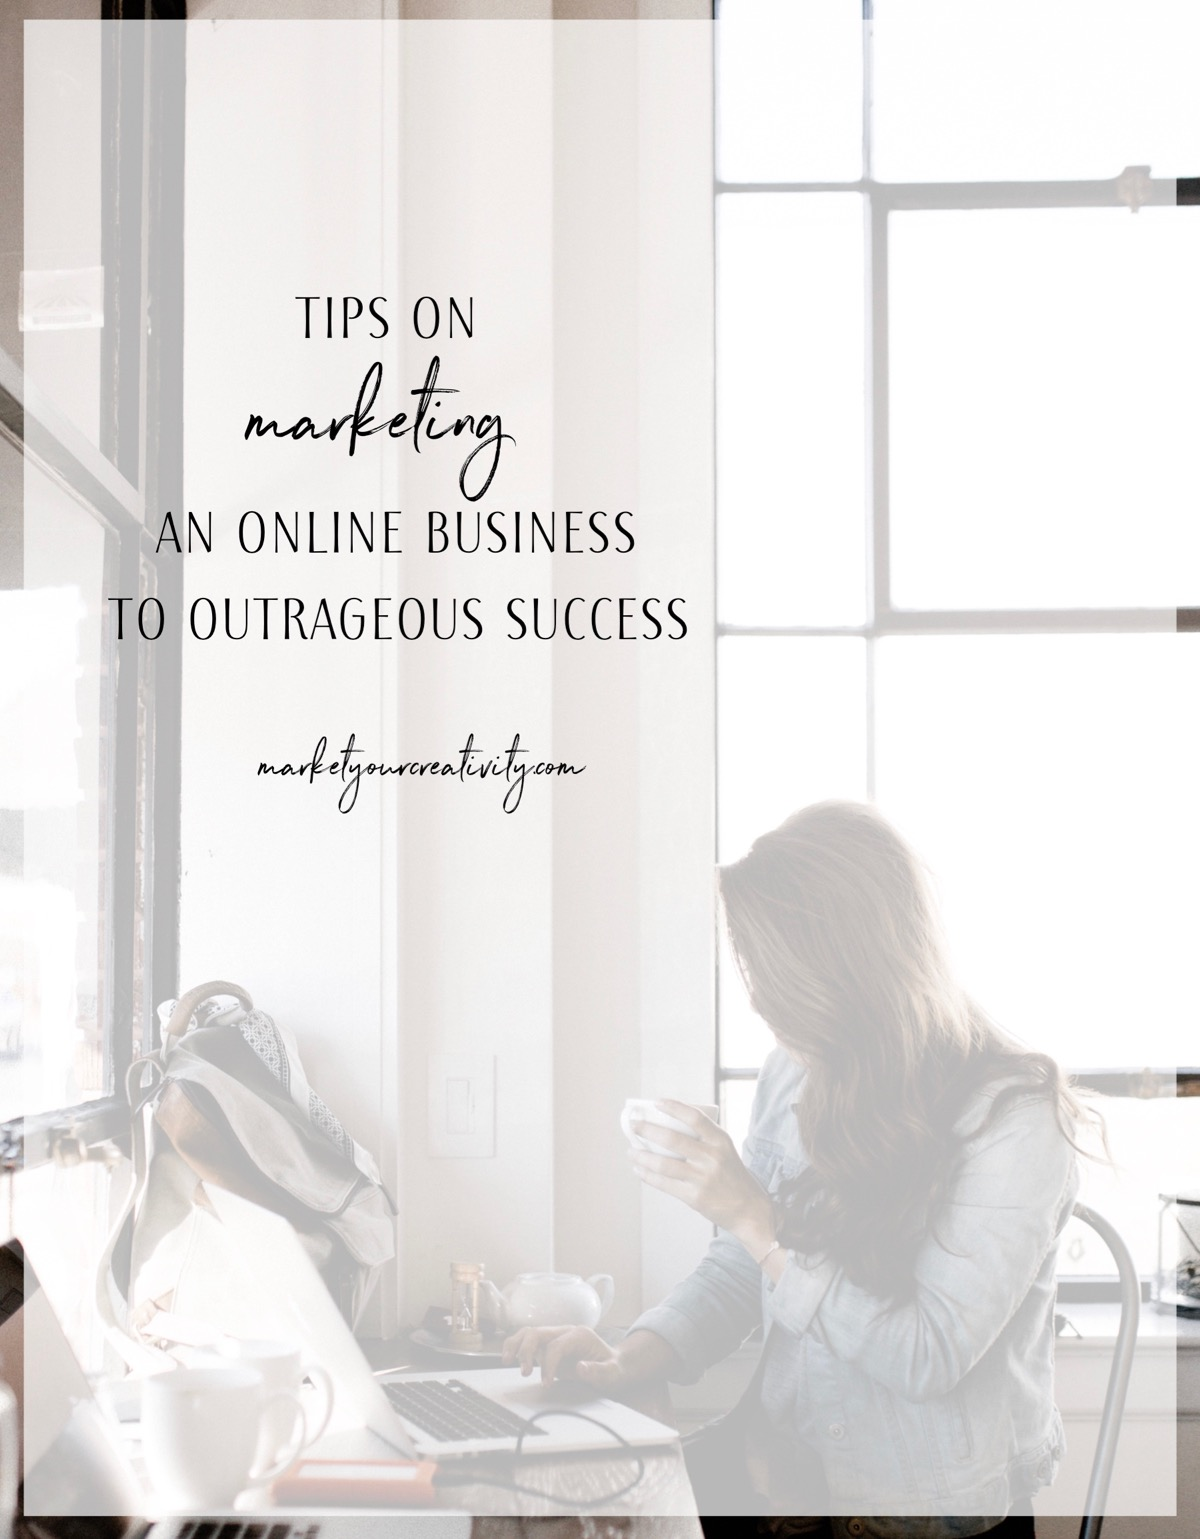 Tips on marketing an online business to outrageous success